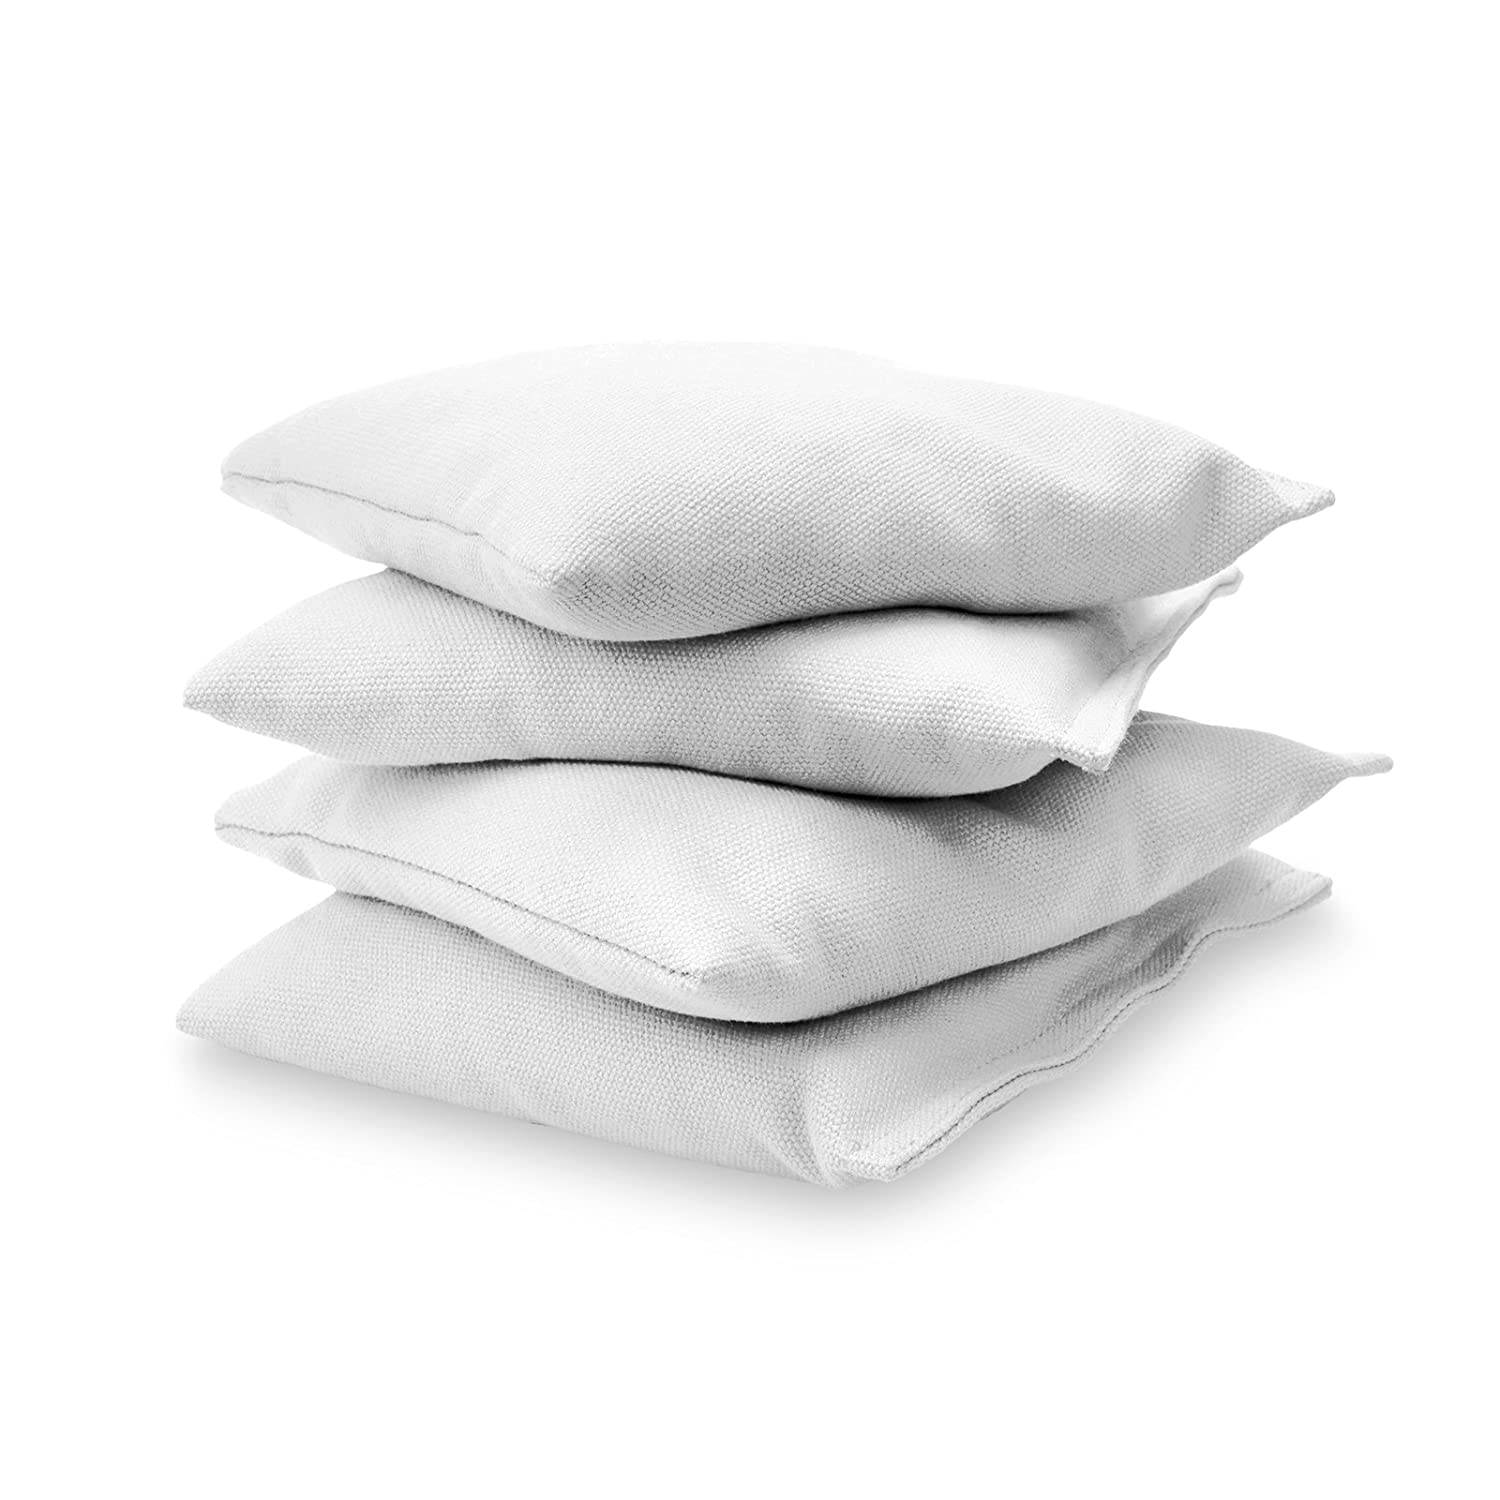 GoSports Premium Bean Bag (4 Set), White CH-BAGS-4-White